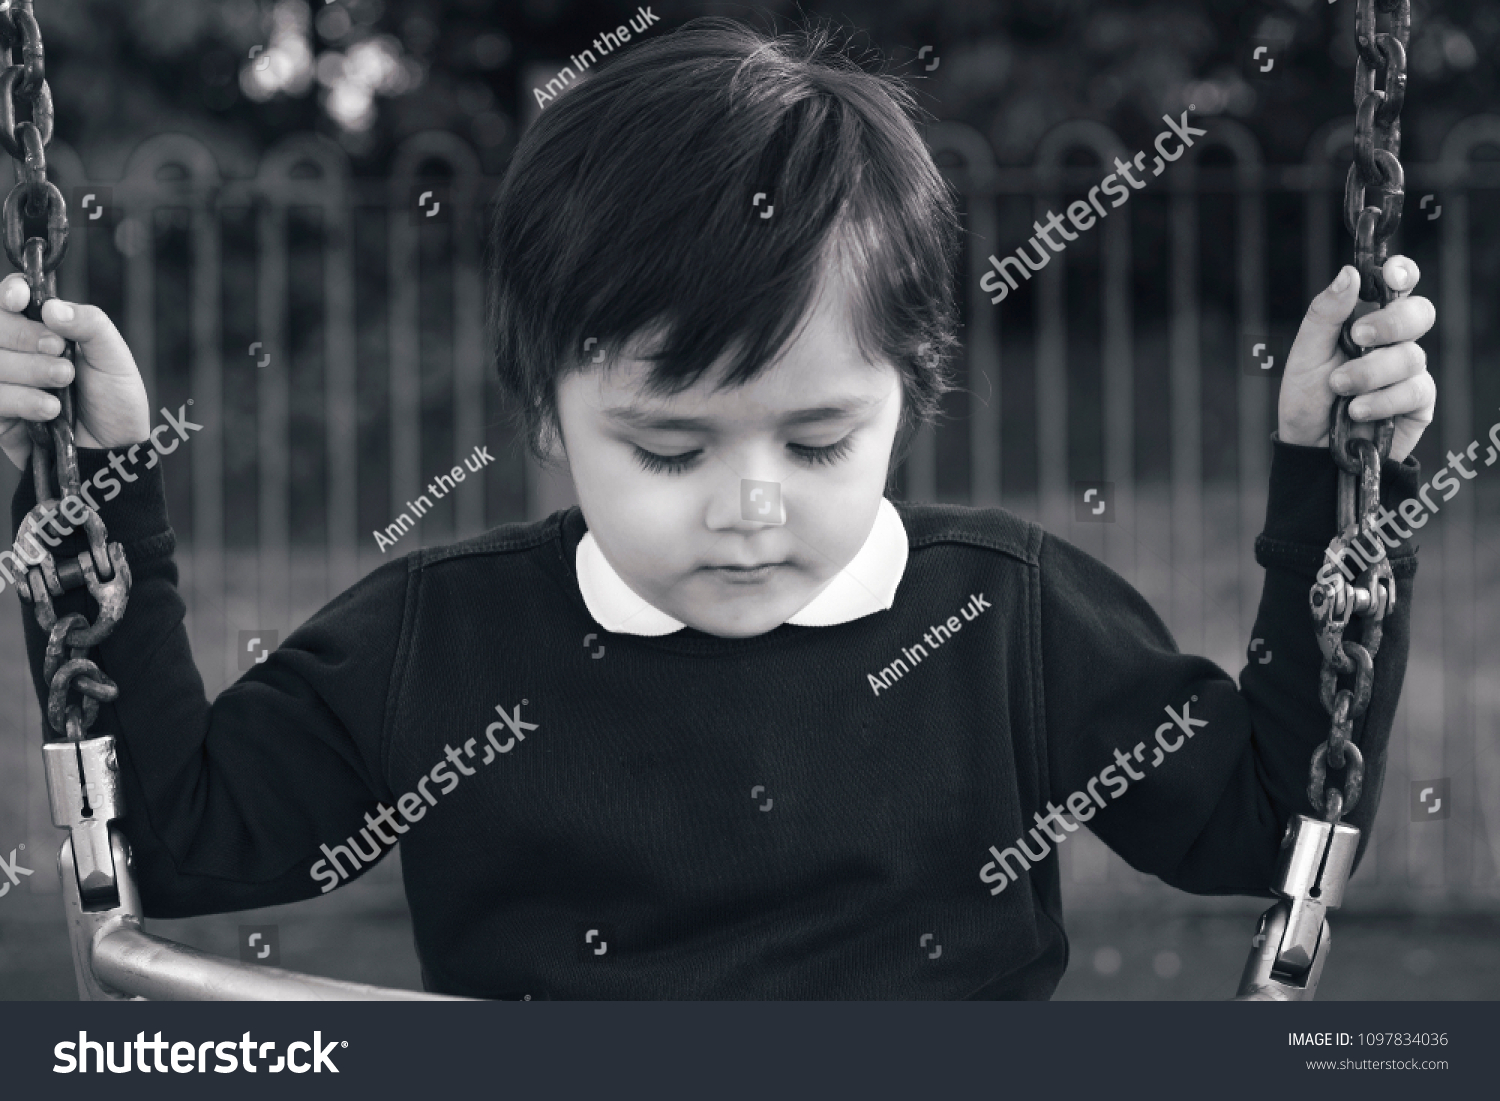 Lonely child with a sad face sitting alone on swing in the playground in black and